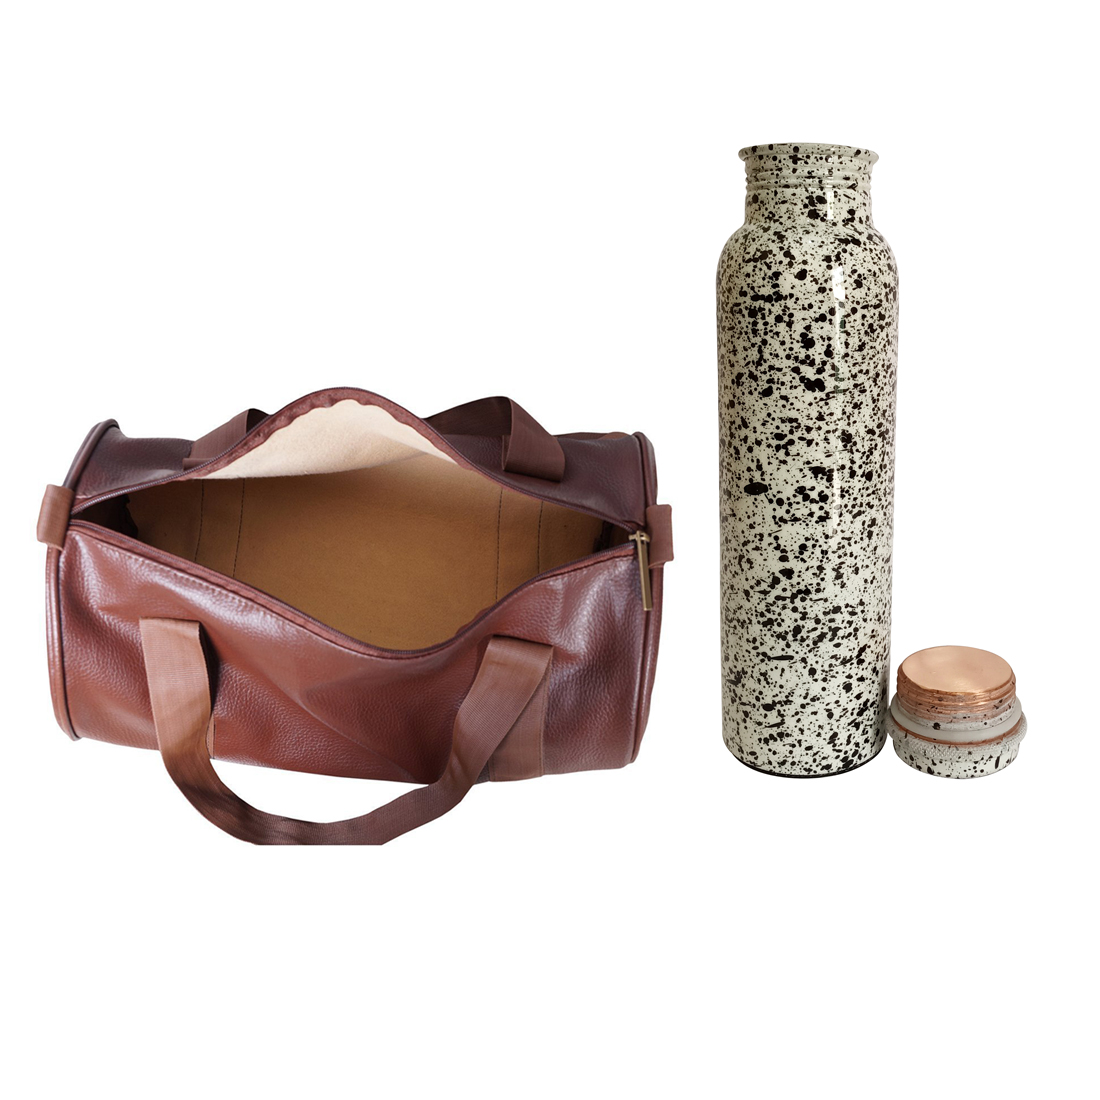 1 Copper 1000ml bottle & 1 Gym Bag - Doted Printed   1000 GymBag Coffe